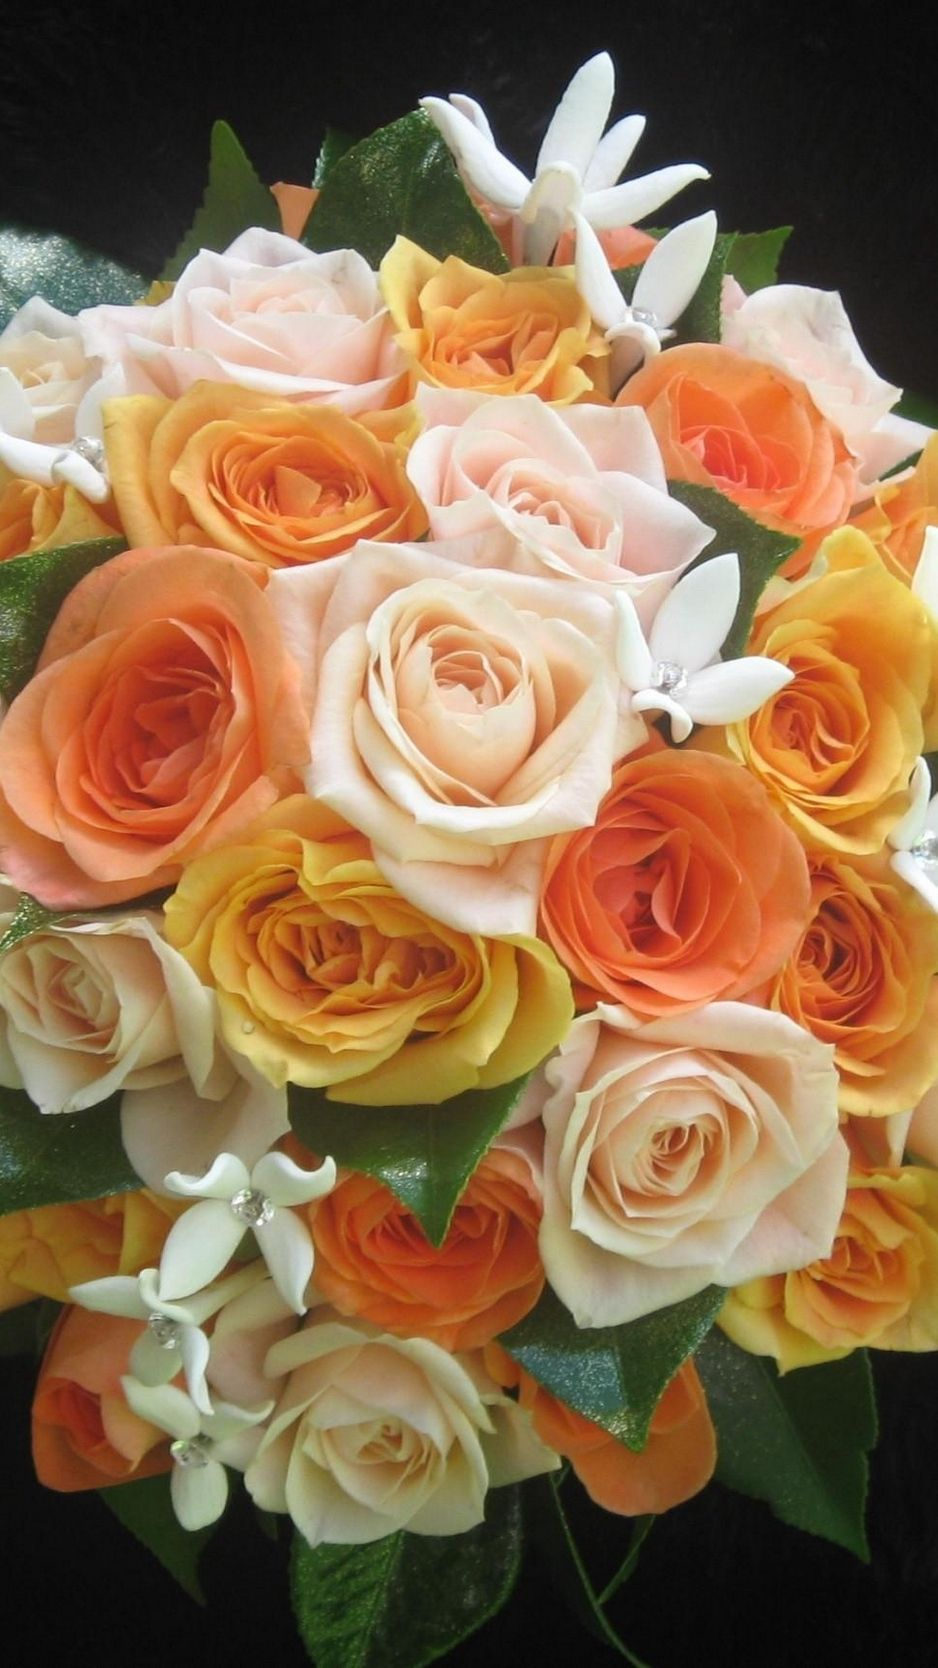 938x1668 Download wallpaper 938x1668 roses, flower, orange, leaf, black ...